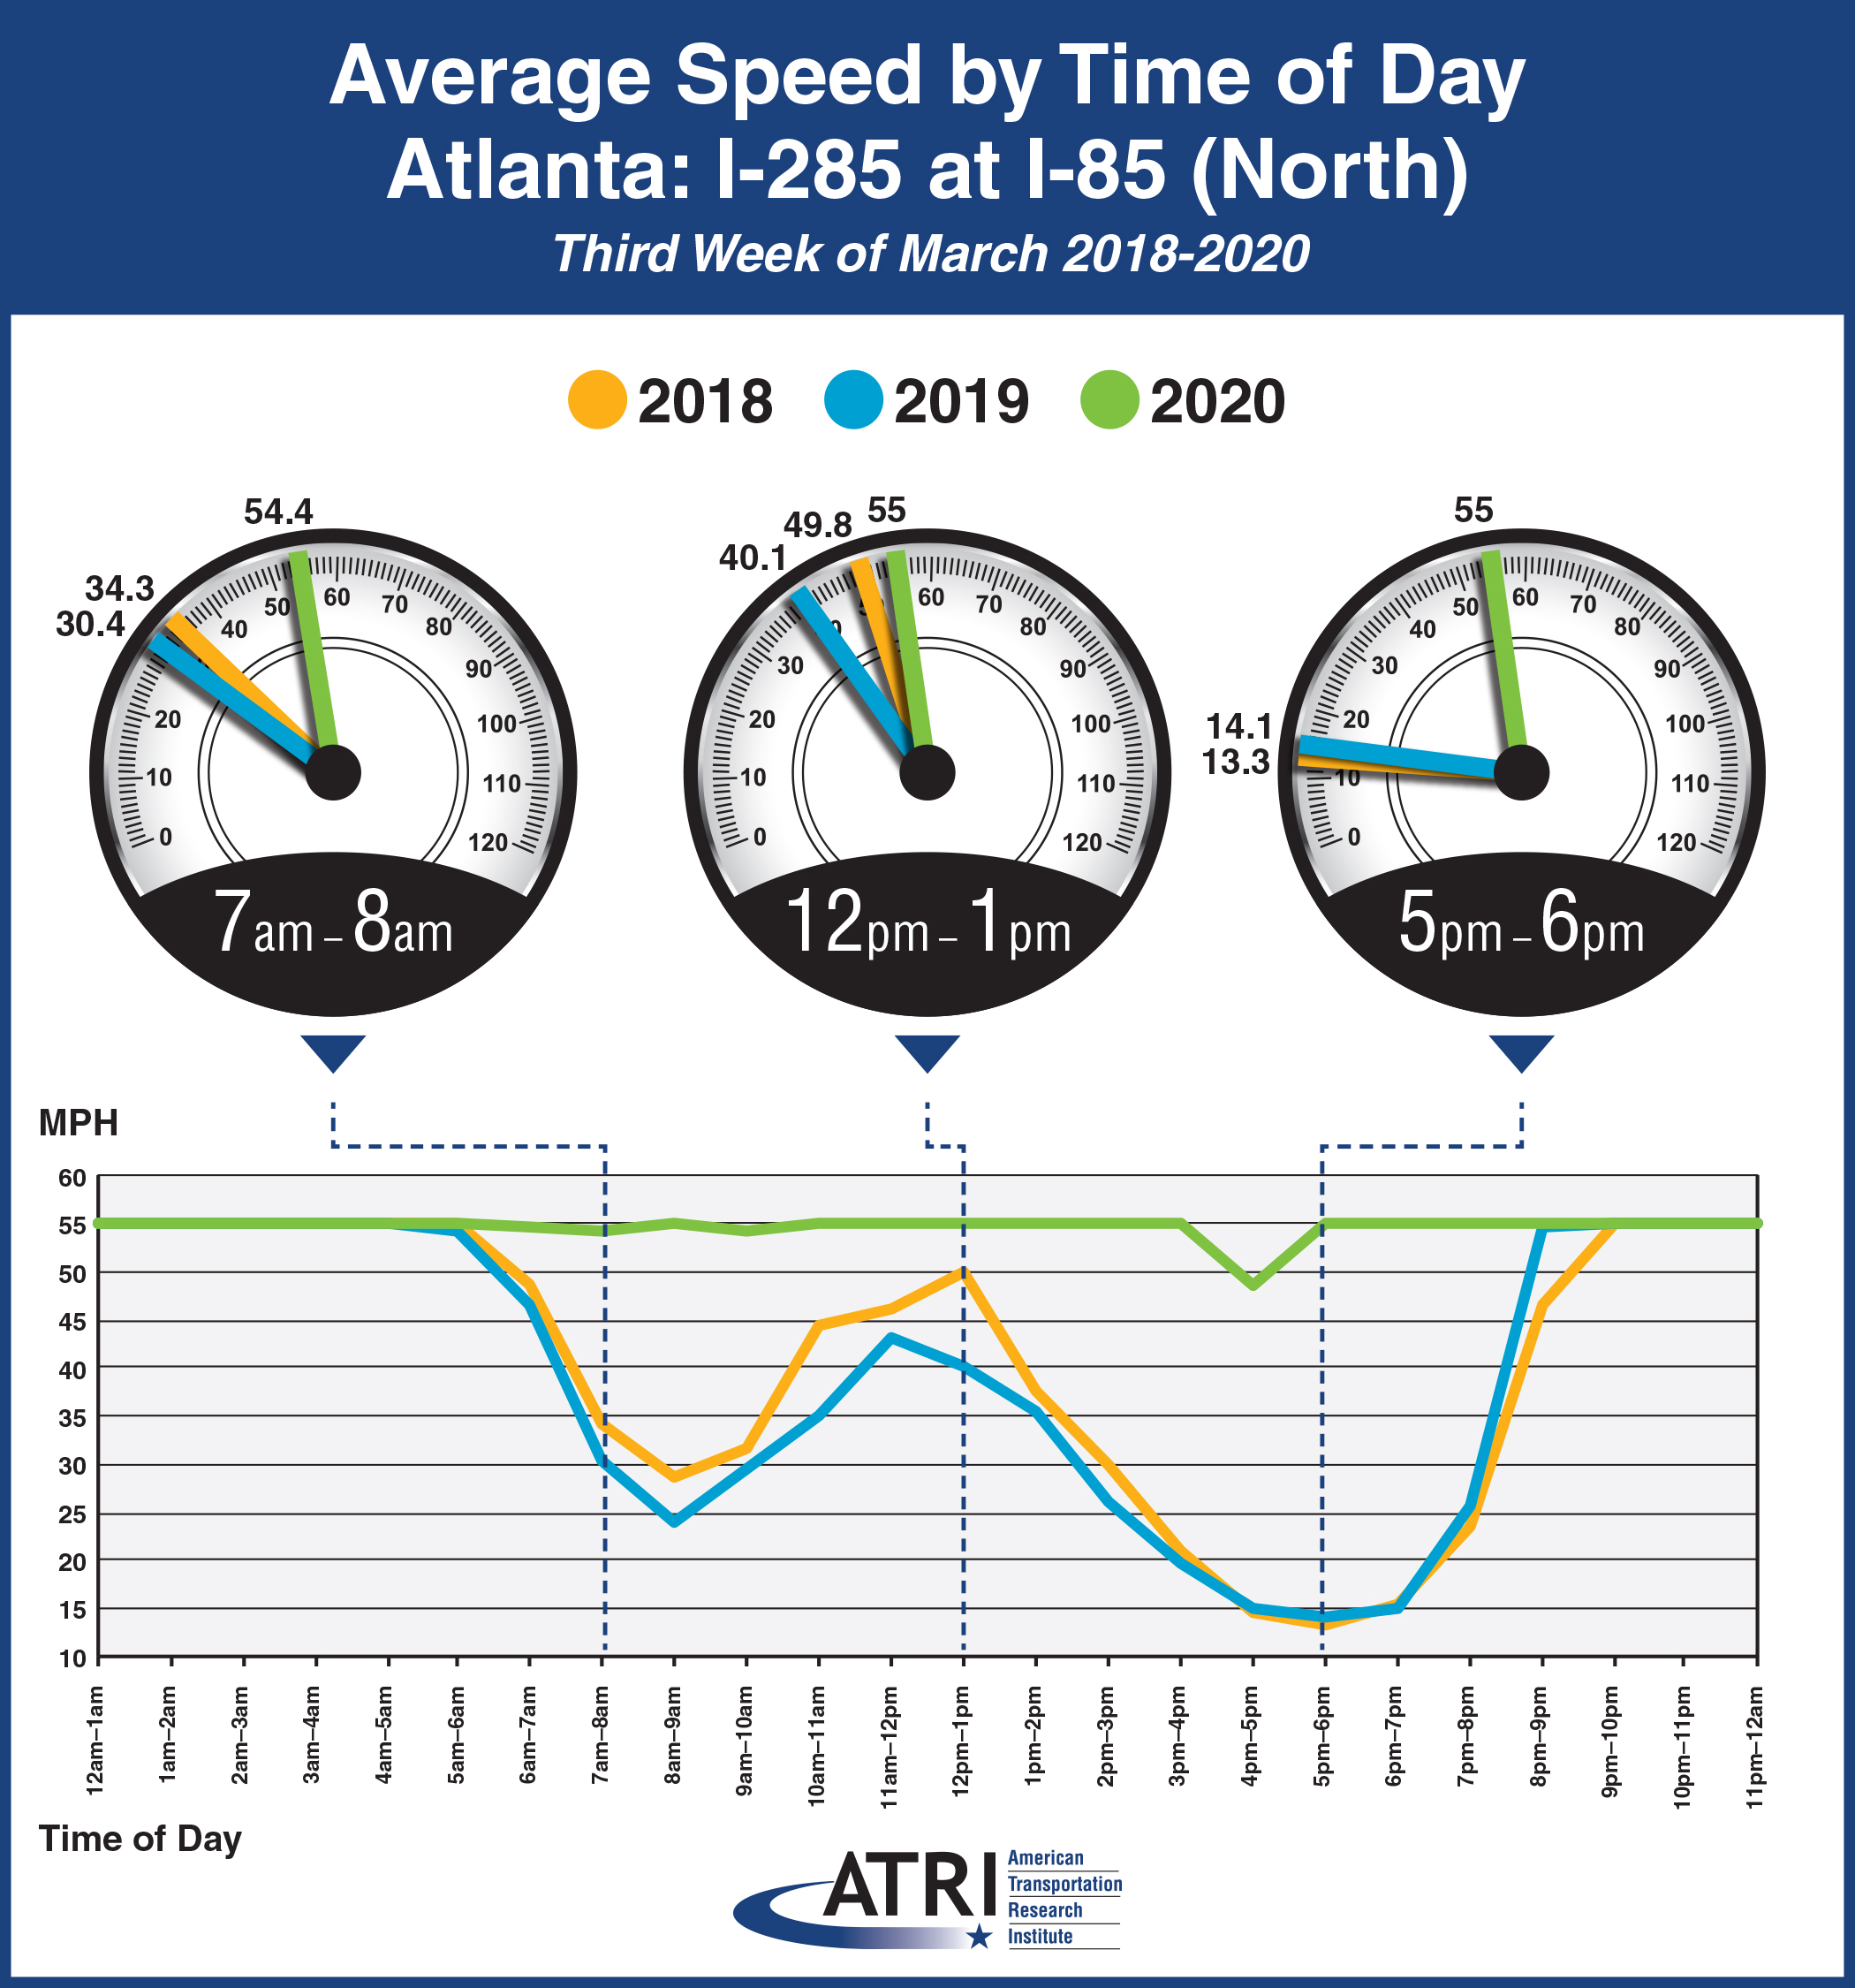 Avg. Speed by Time of Day Atlanta: I-285 at I-85 (North)